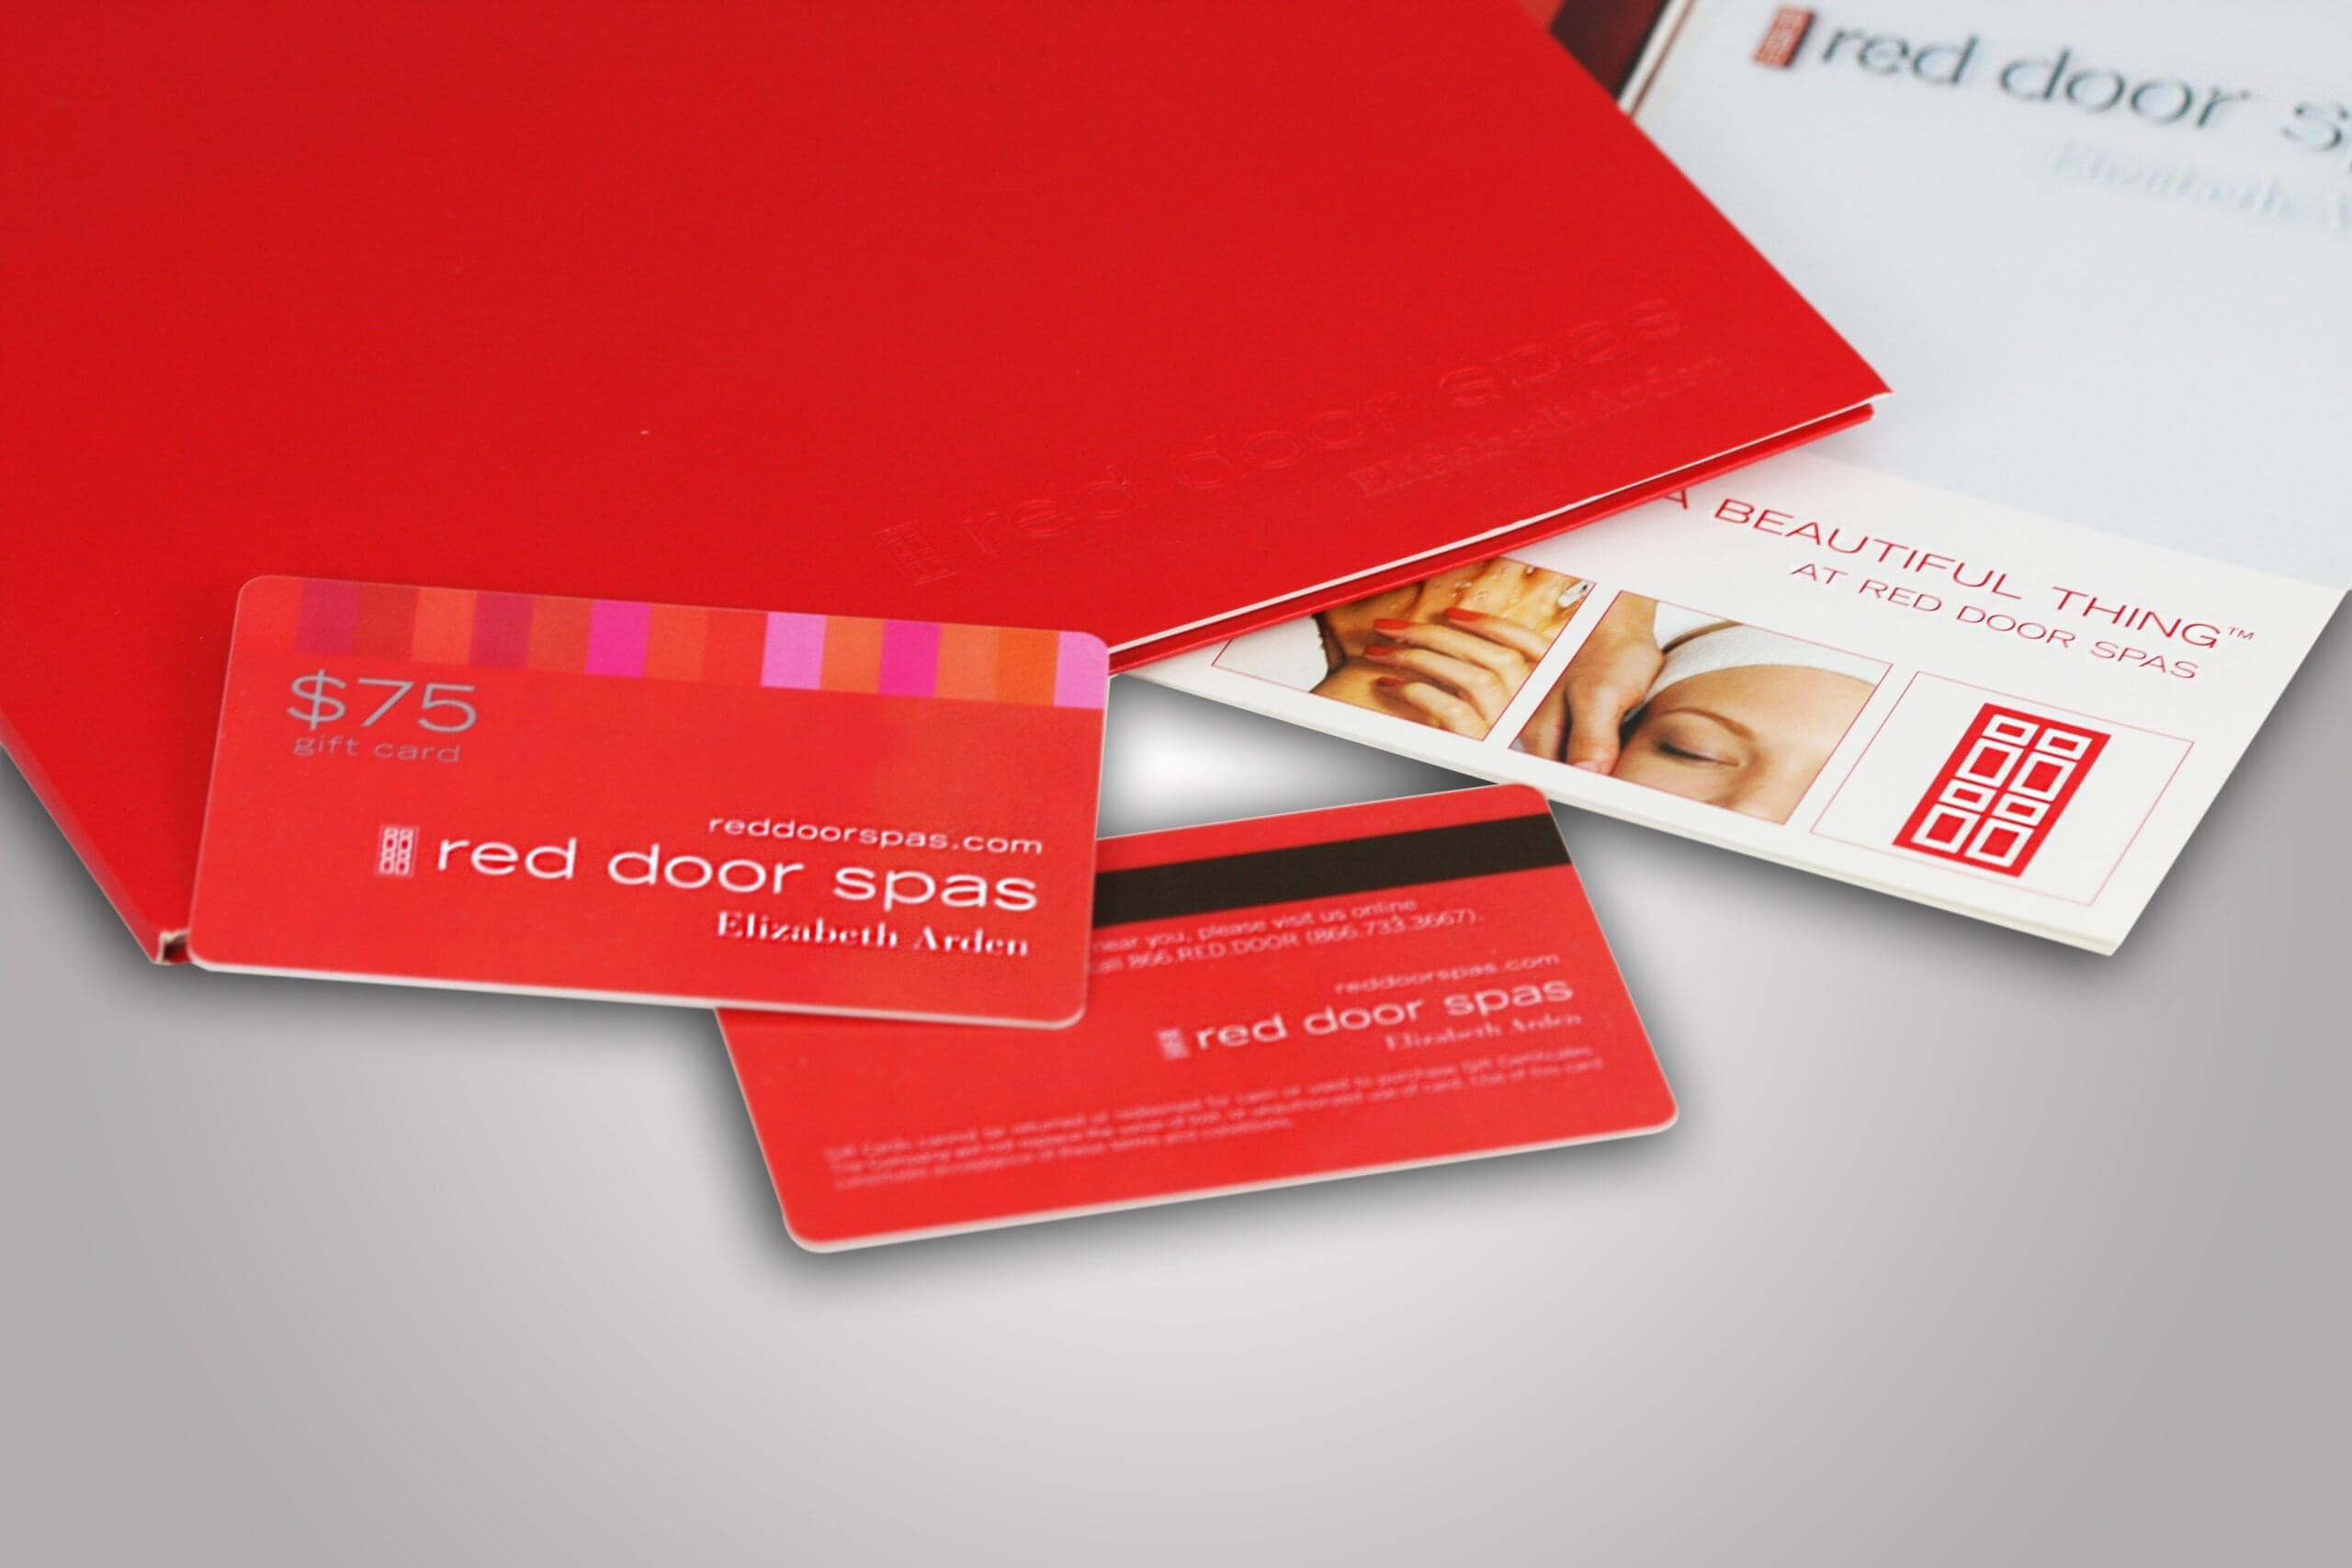 A custom designed gift card can help you attract new customers and reward loyalty of existing customers. At PPD&G we can help you create the perfect custom printed magnetic strip gift card for your business.